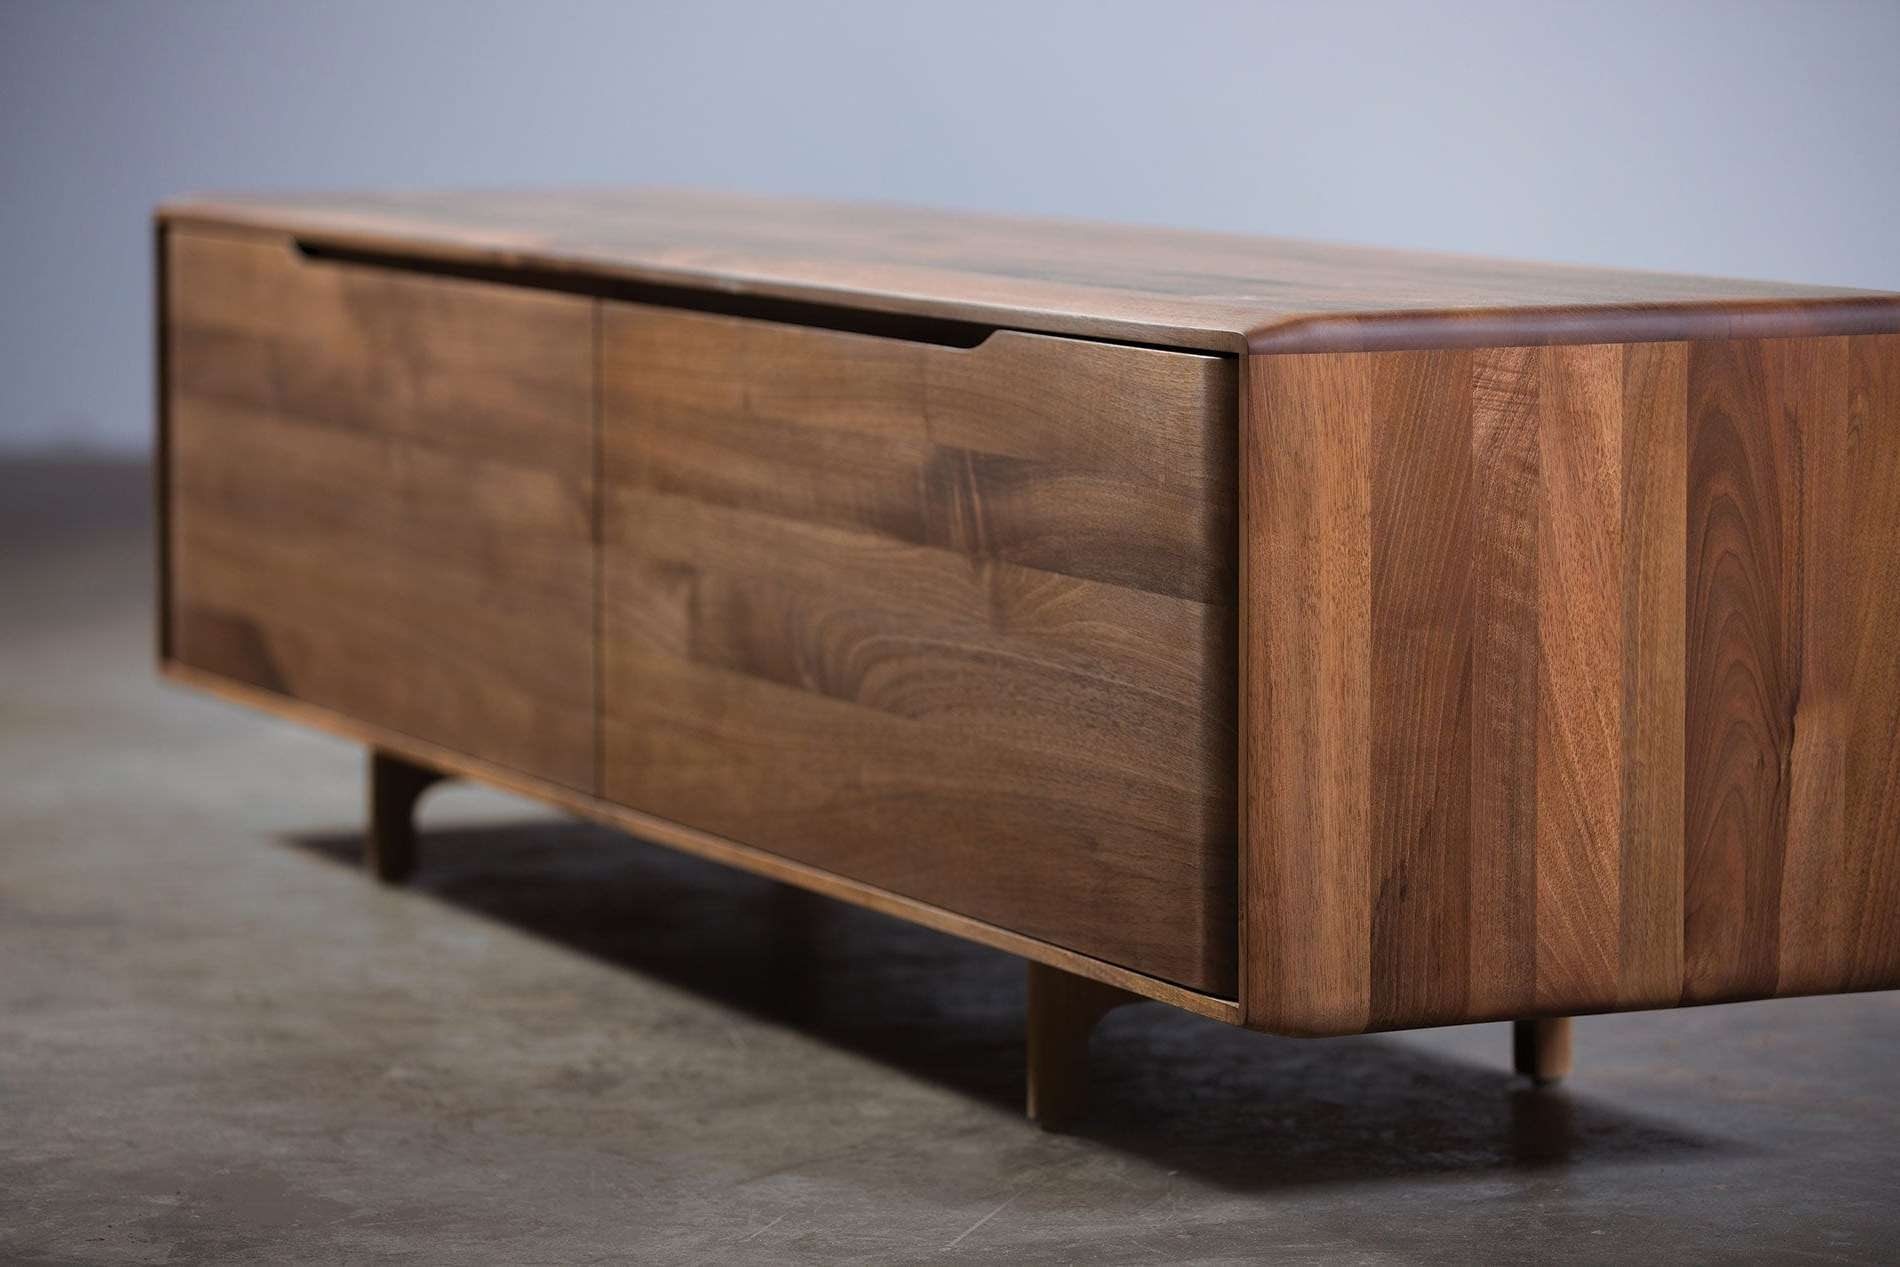 Contemporary Sideboard / Oak / Walnut / Solid Wood – Invito Inside Solid Wood Sideboards (View 2 of 20)